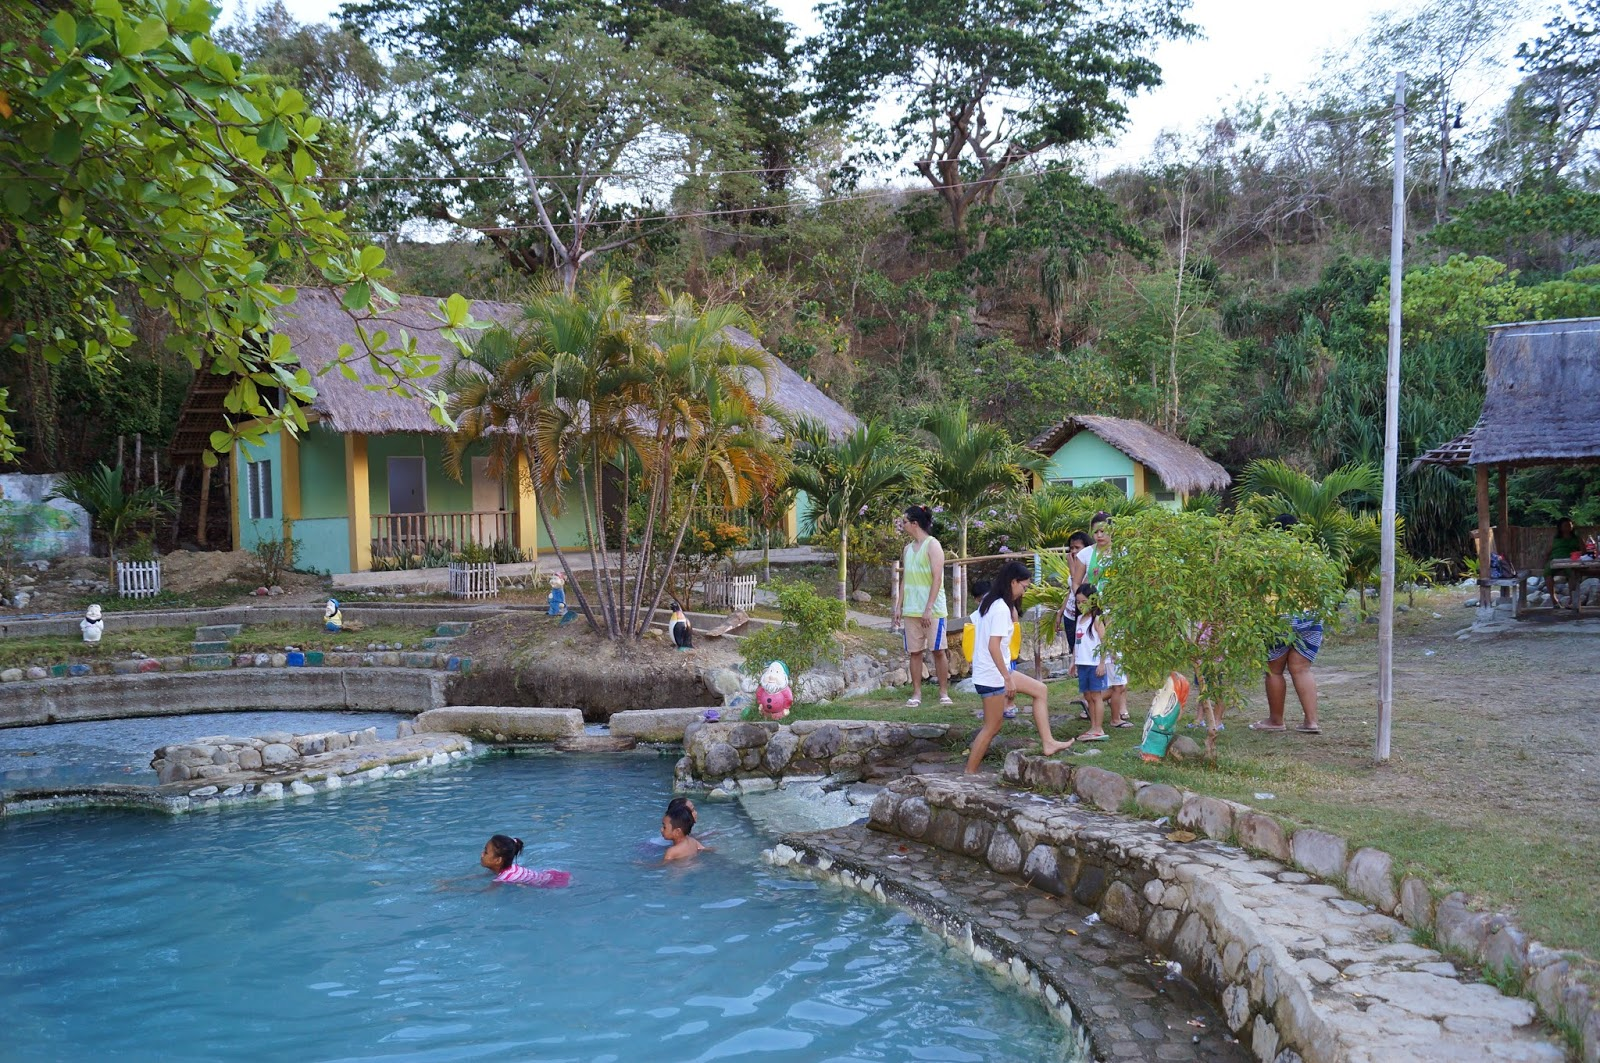 Malbog Hot Springs Buenavista & Around, Marinduque Summer Getaway 2014: Malbog Sulfur Hot Spring ...